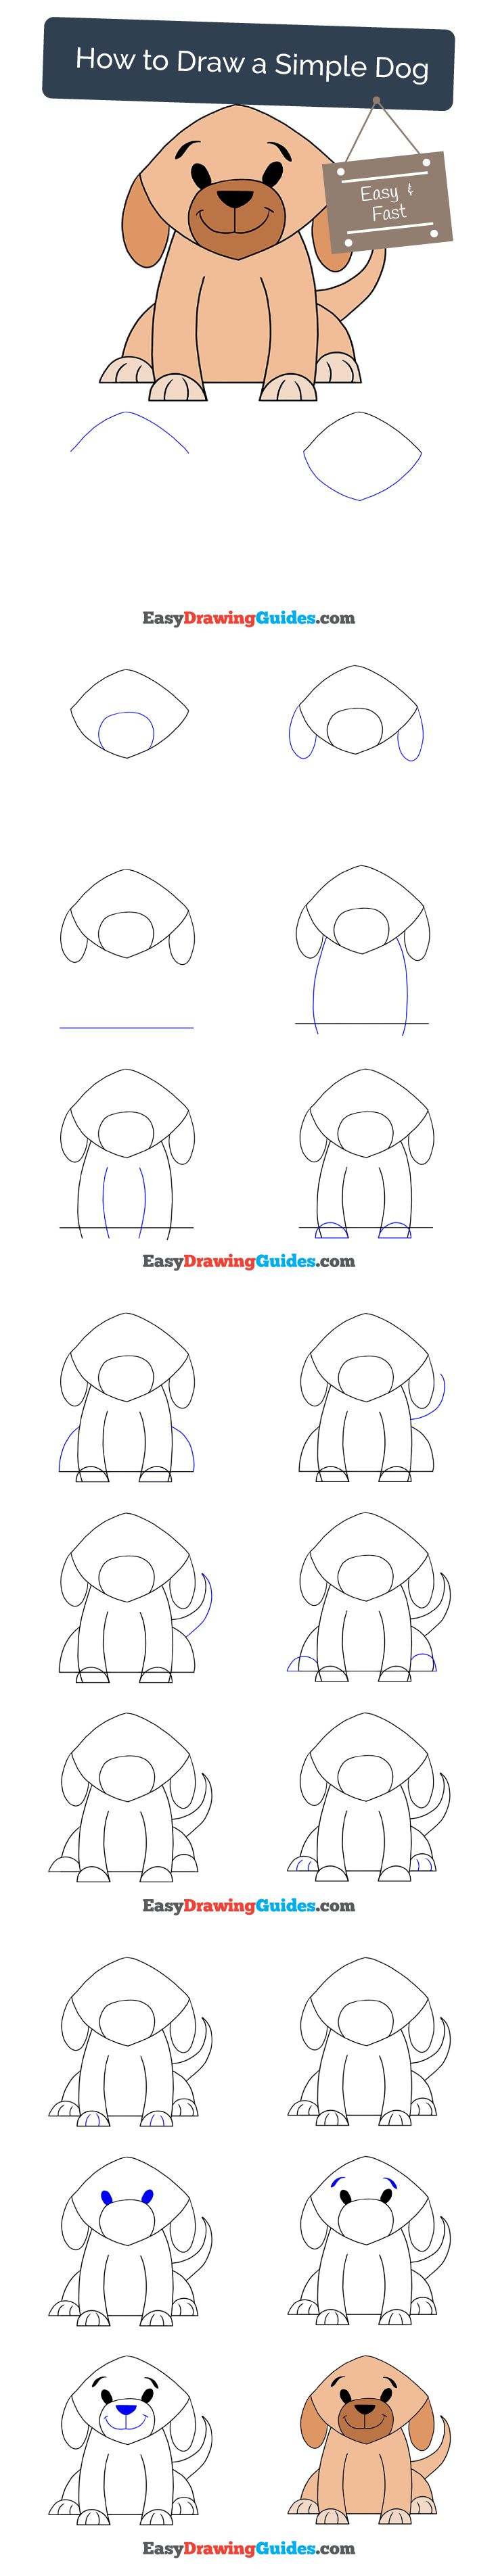 Learn How To Draw A Simple Dog: Easy Stepbystep Drawing Tutorial